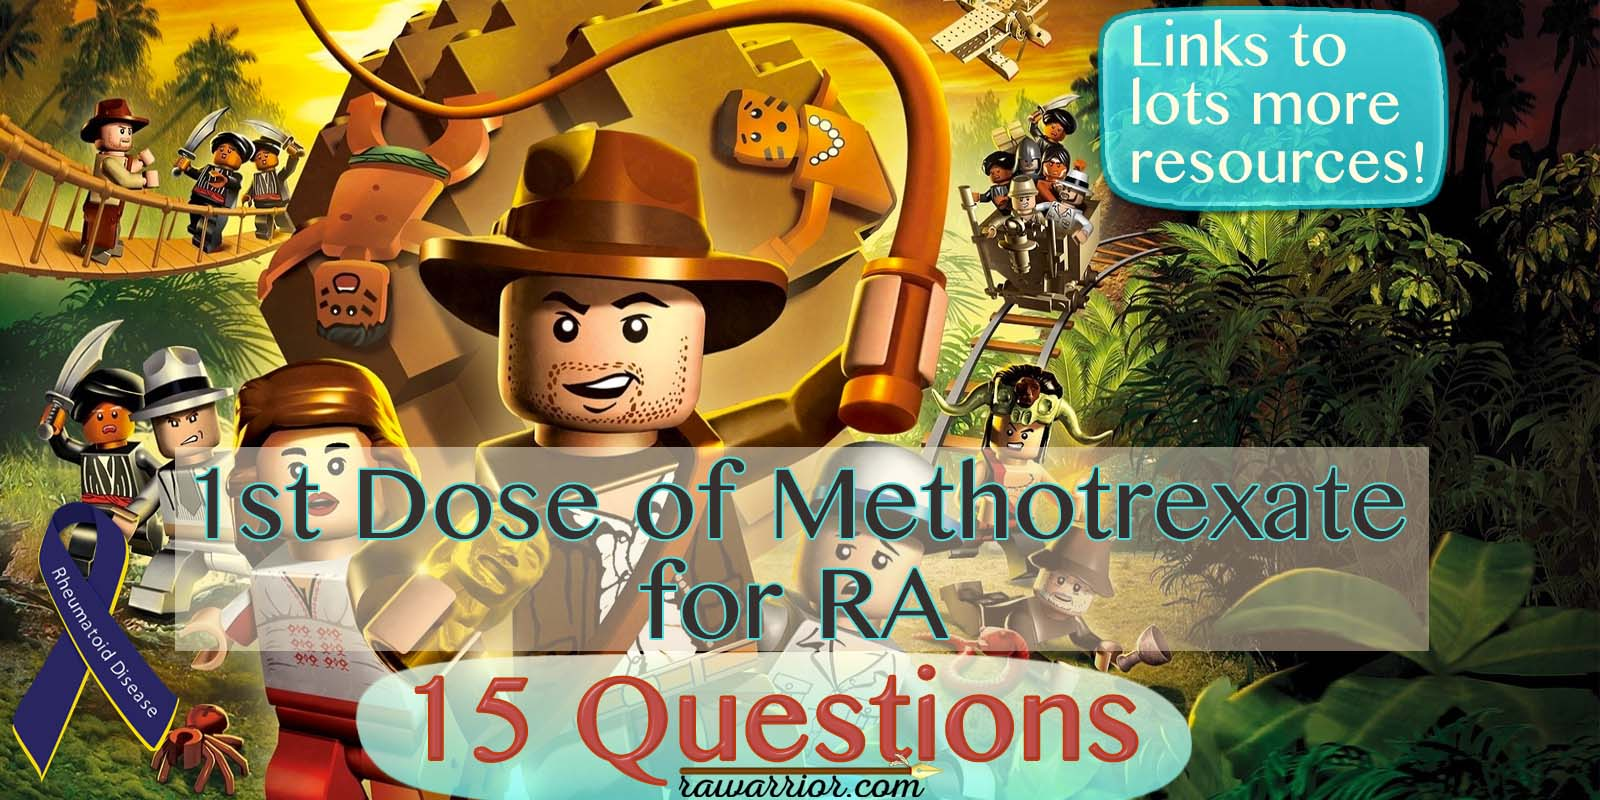 1st Dose of Methotrexate for Rheumatoid Arthritis: 15 Questions